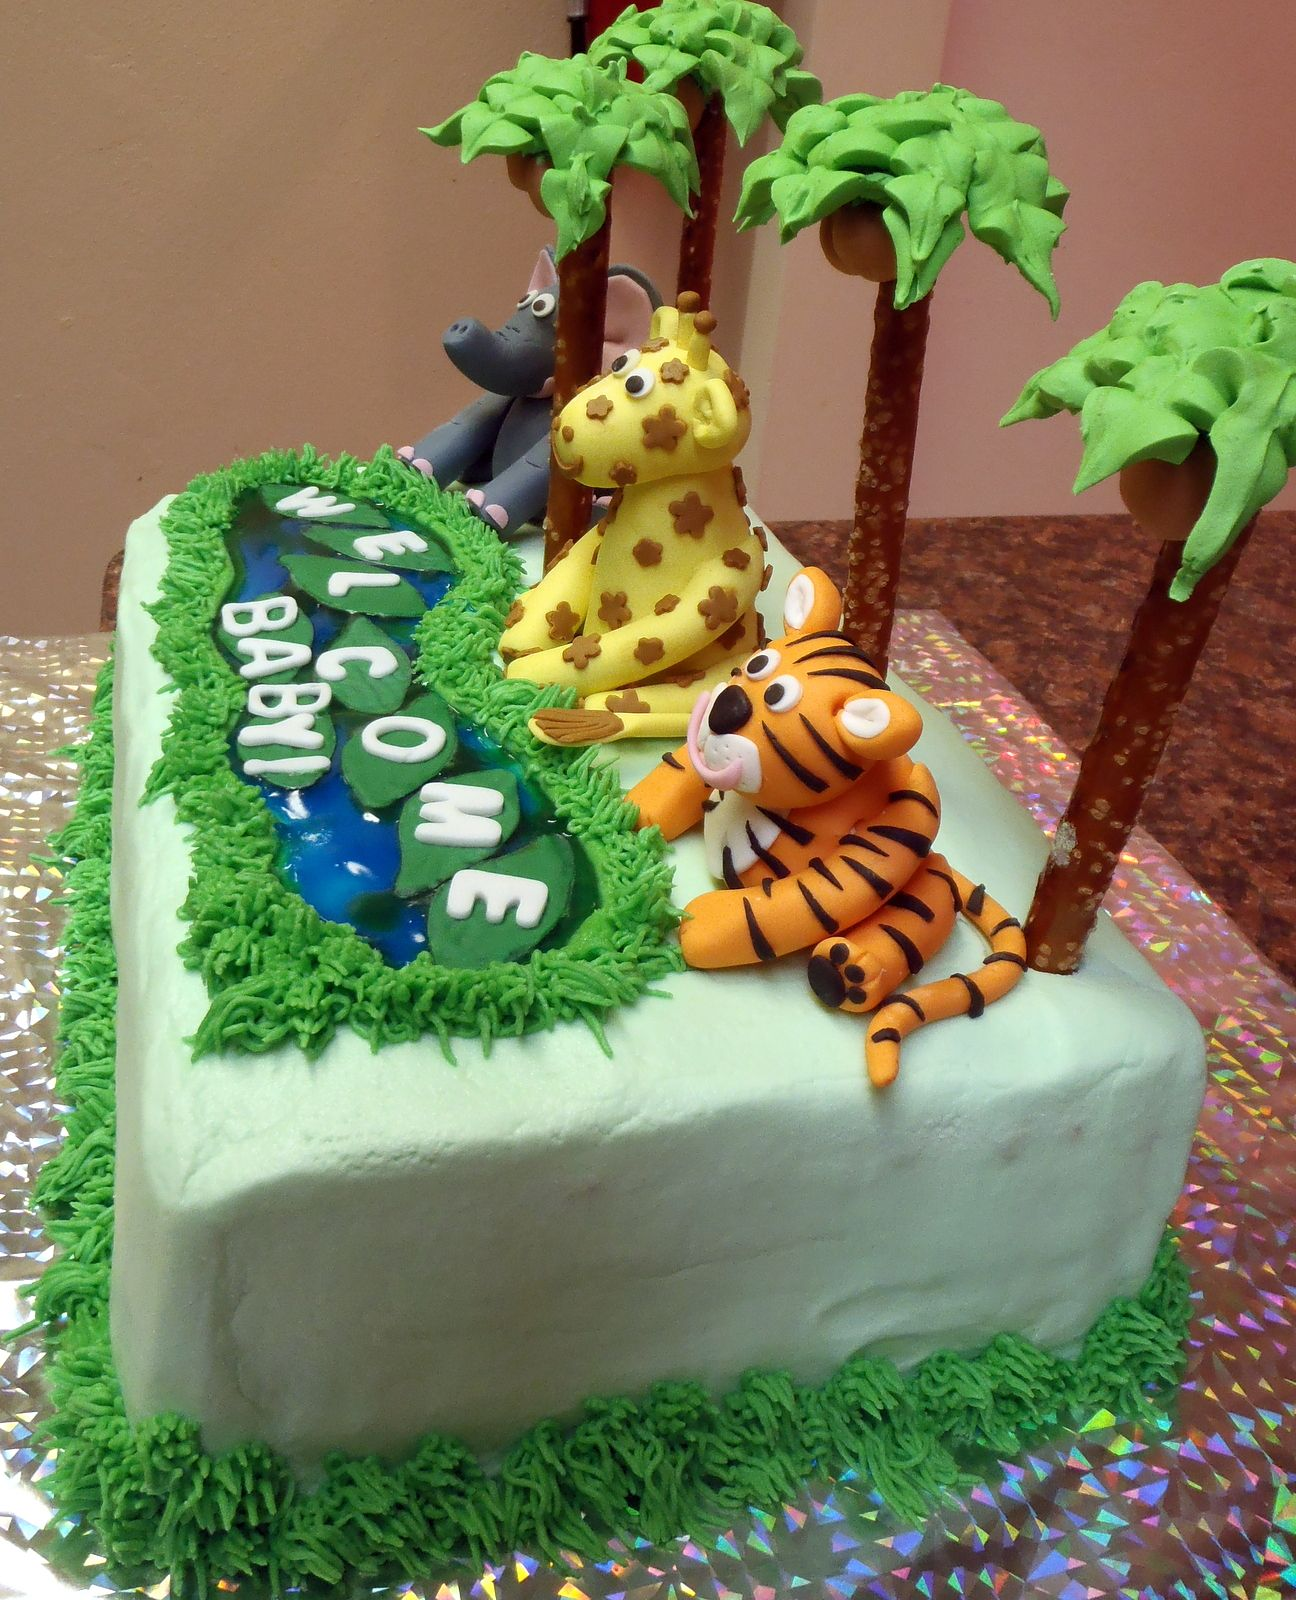 finished cake, side view Cumple